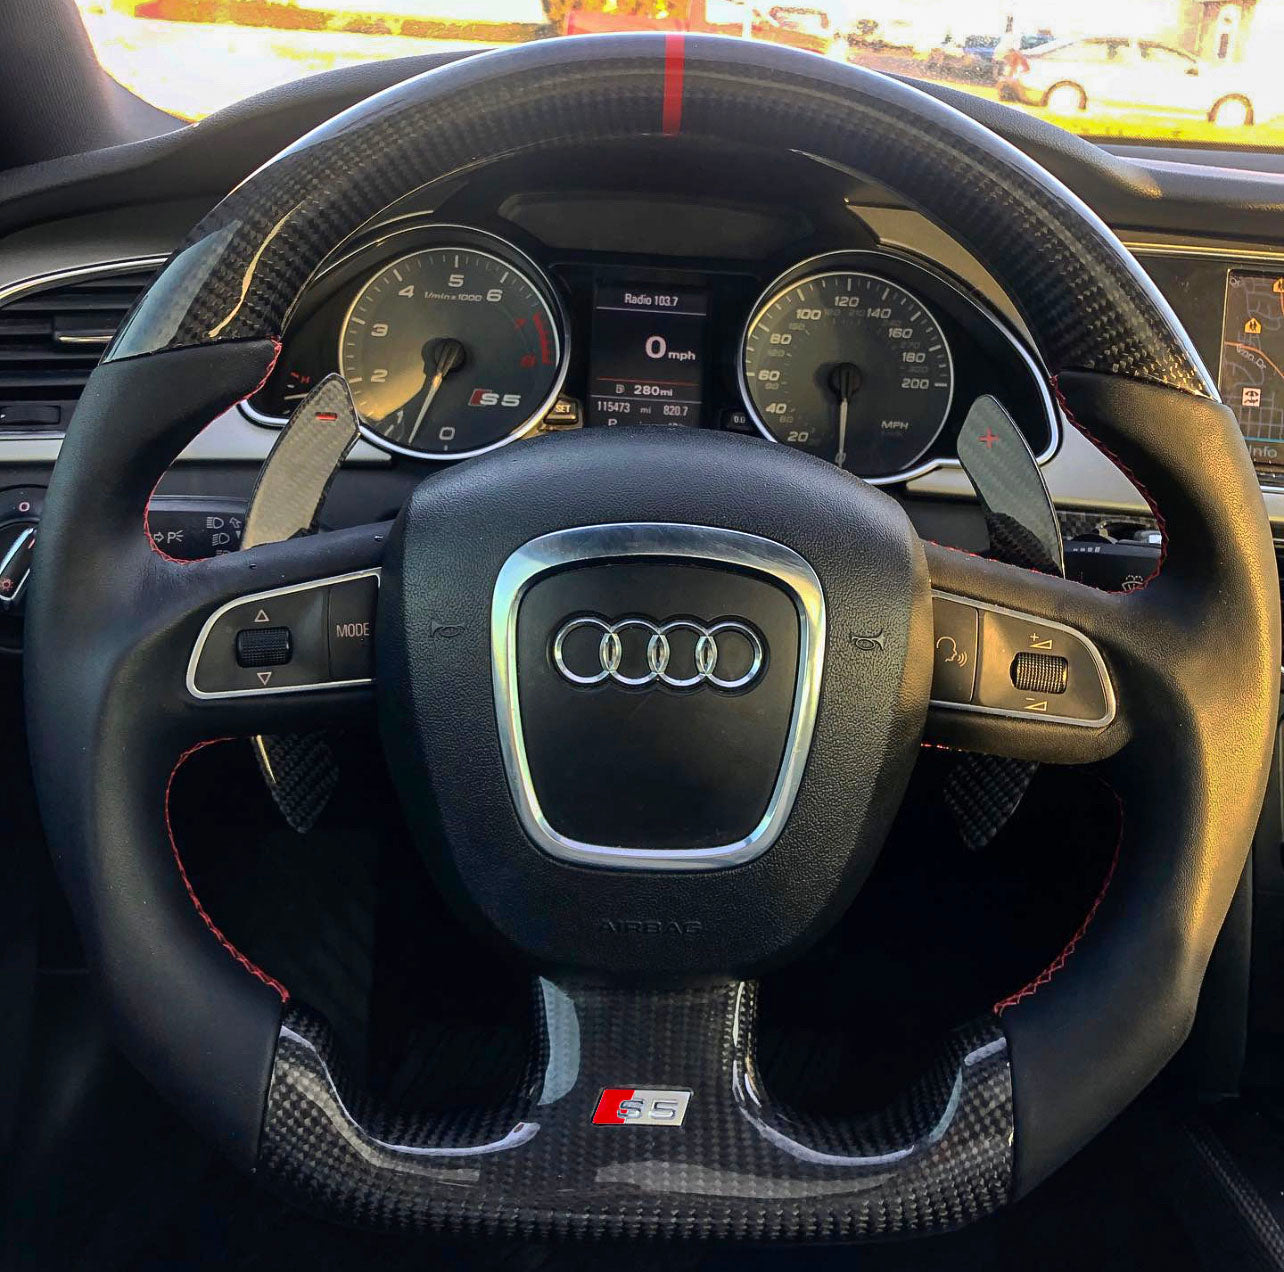 Audi B8 Pre Facelift S4 S5 A4 A5 Carbon Edition Steering Wheel Eurozone Tuning